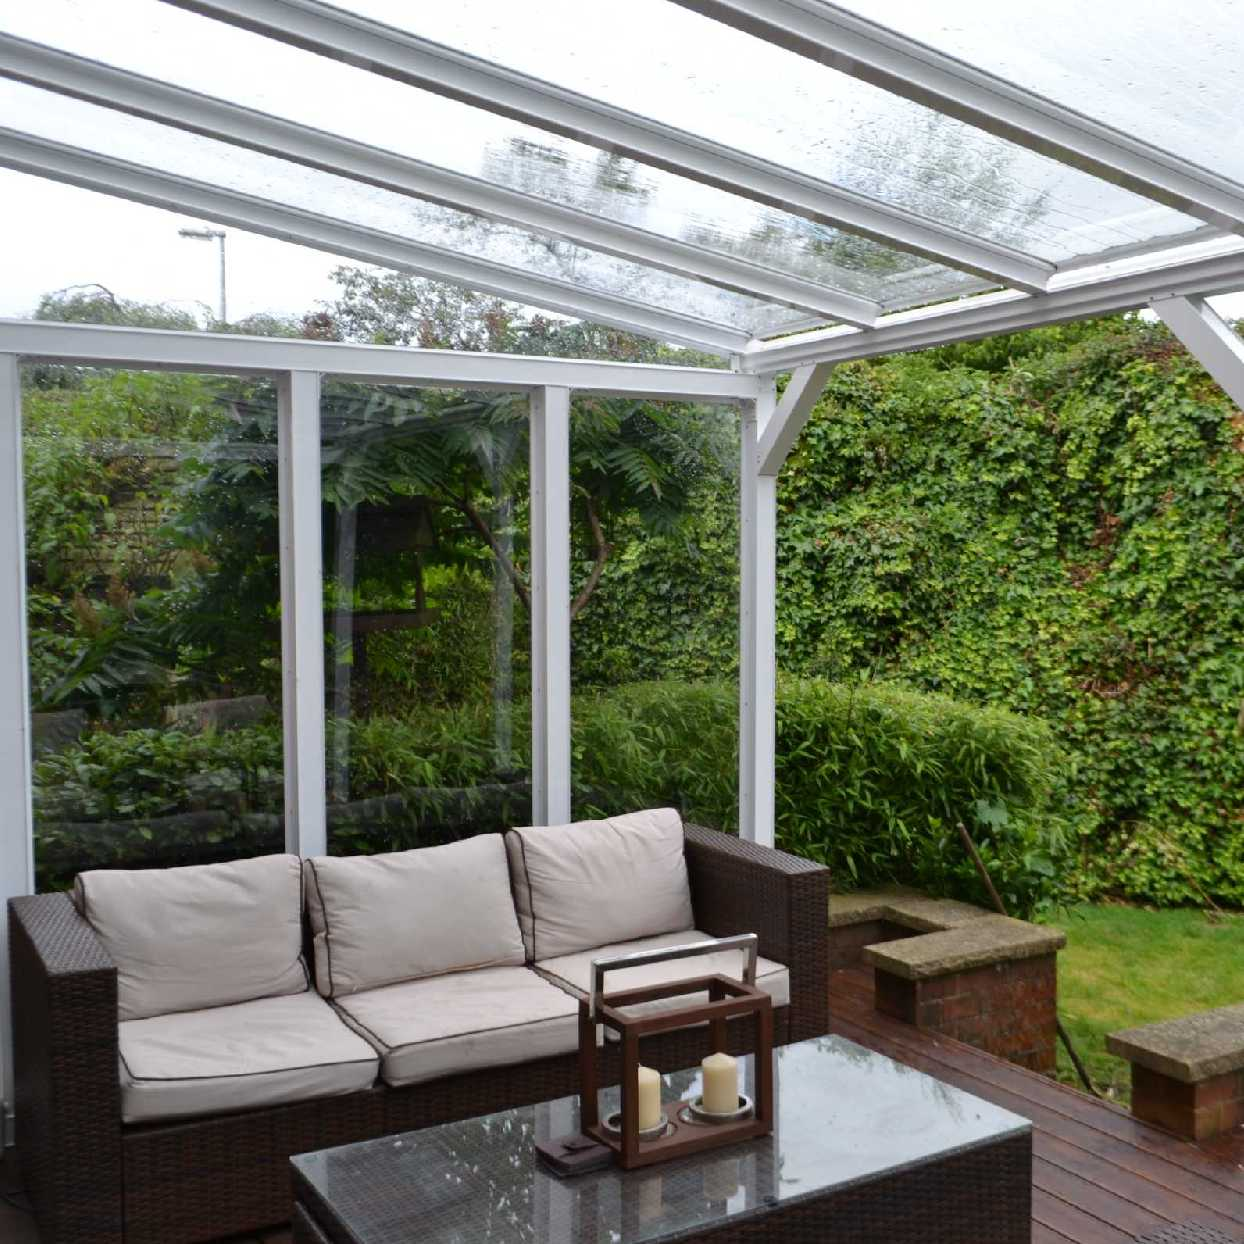 Great selection of Omega Smart White Lean-To Canopy with 16mm Polycarbonate Glazing - 9.5m (W) x 1.5m (P), (5) Supporting Posts